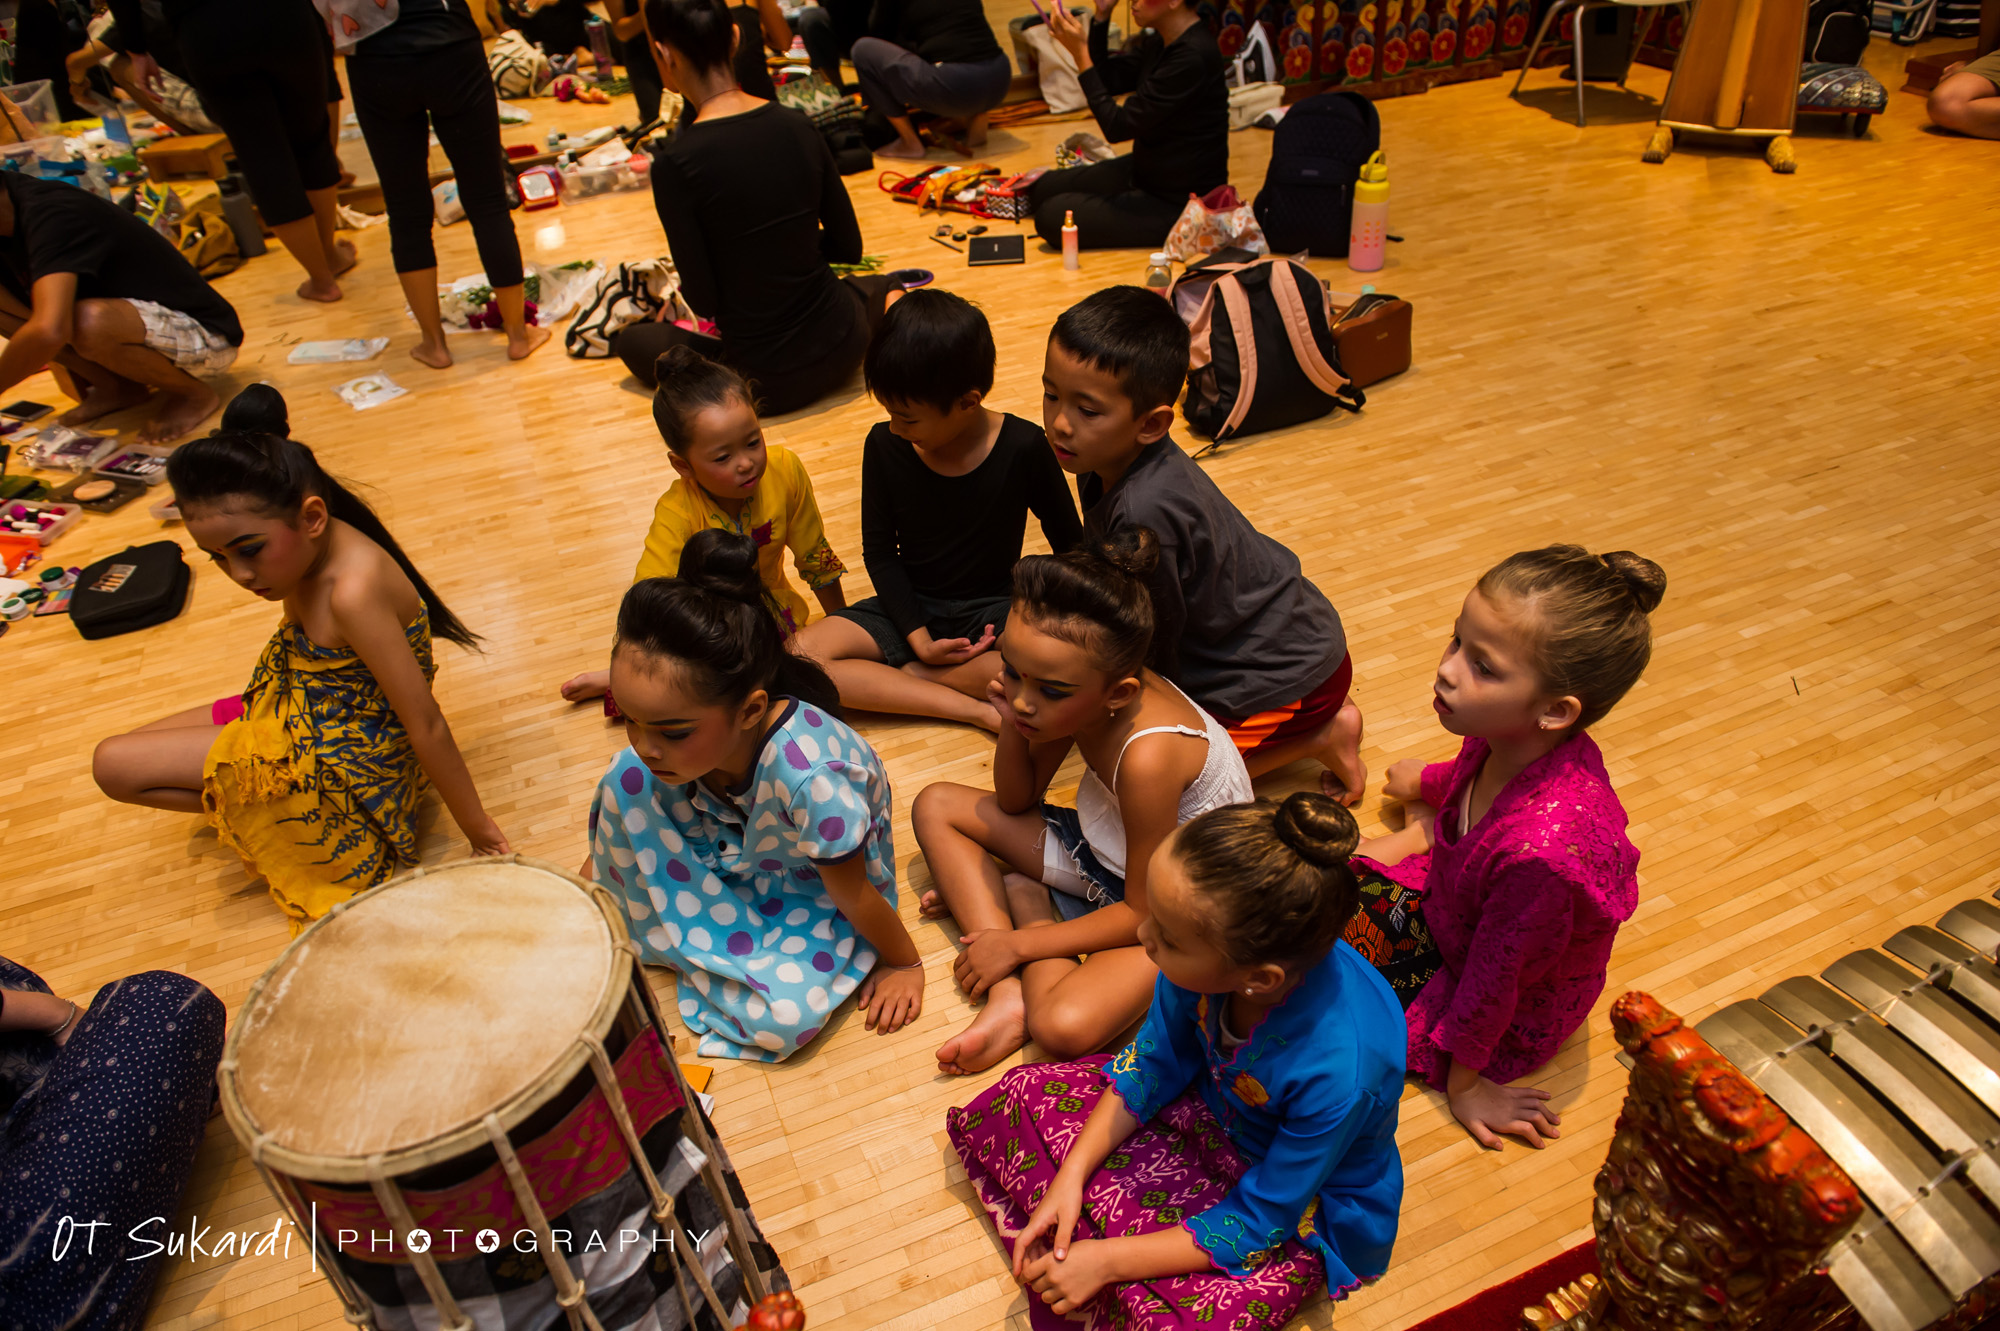 Young performers in street clothes sit on performance floor